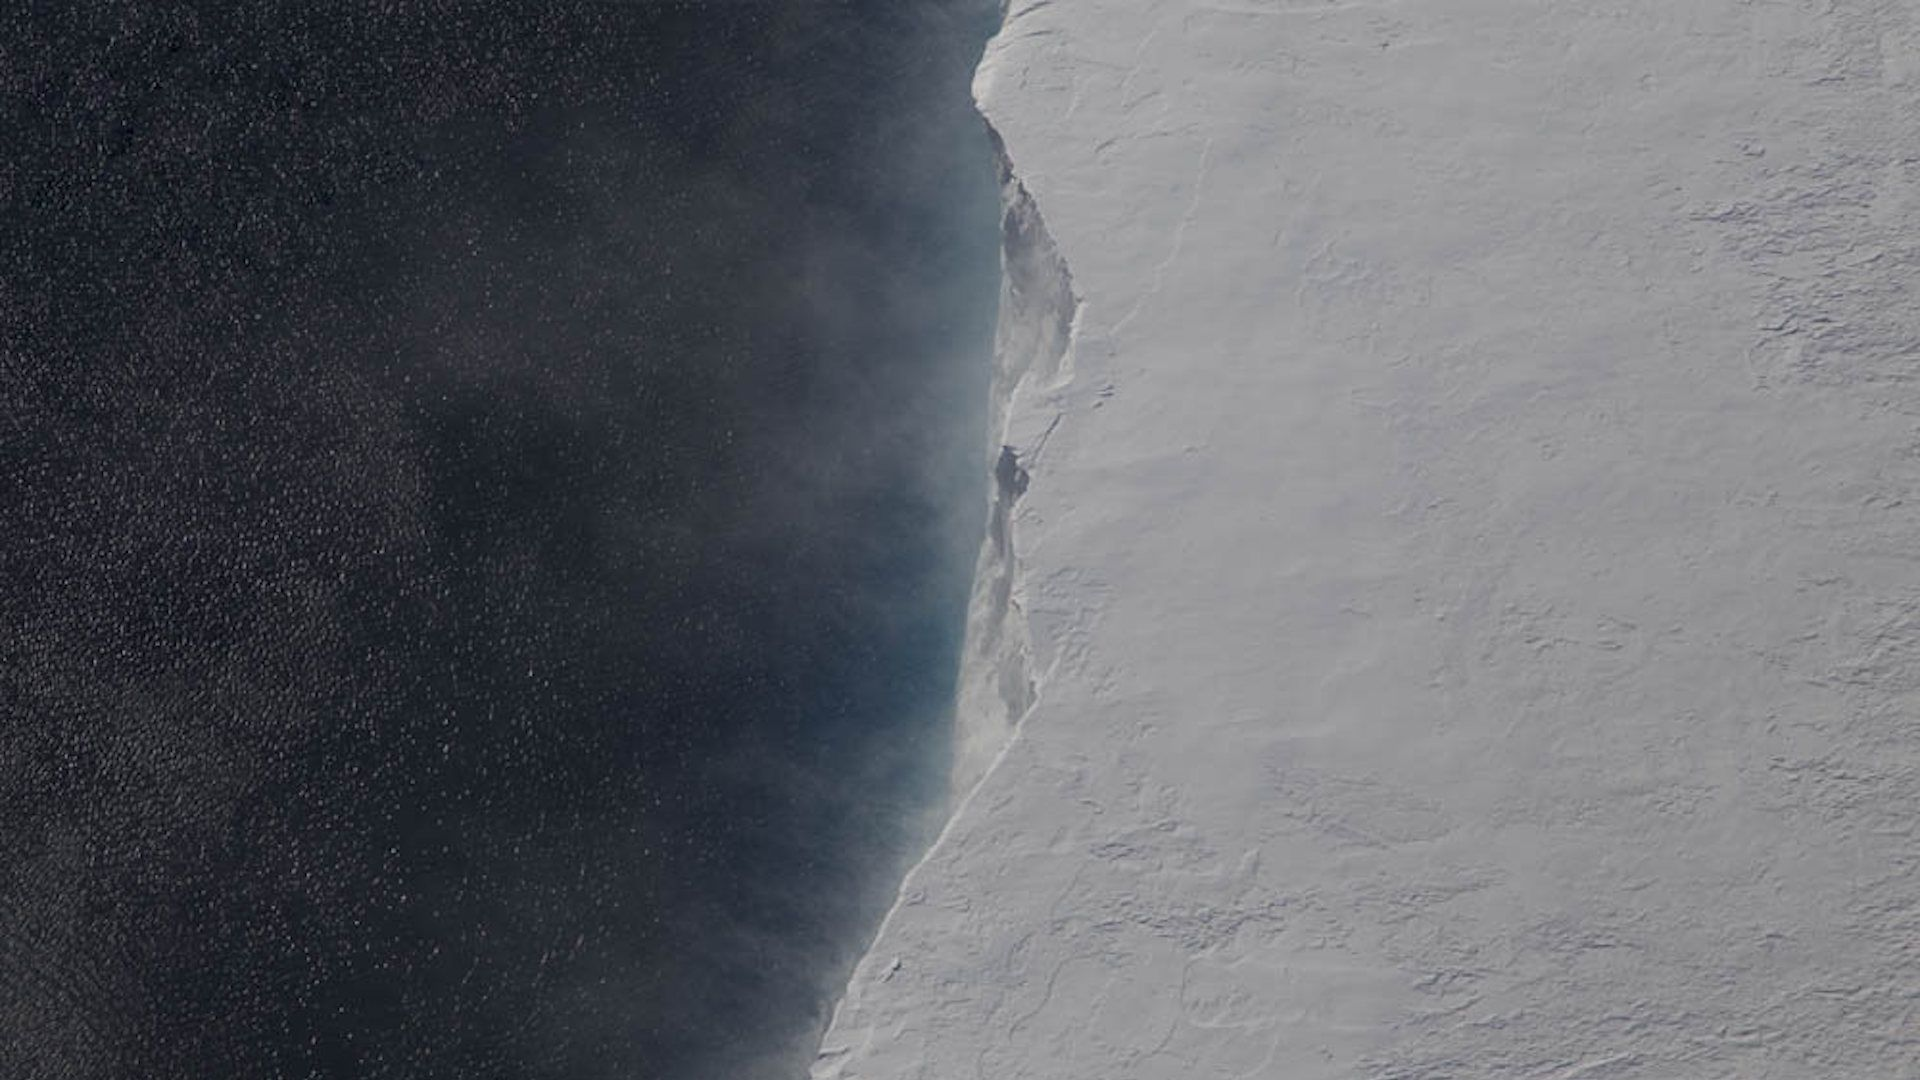 From the Antarctic ice broke off an iceberg the size of Zaporozhye